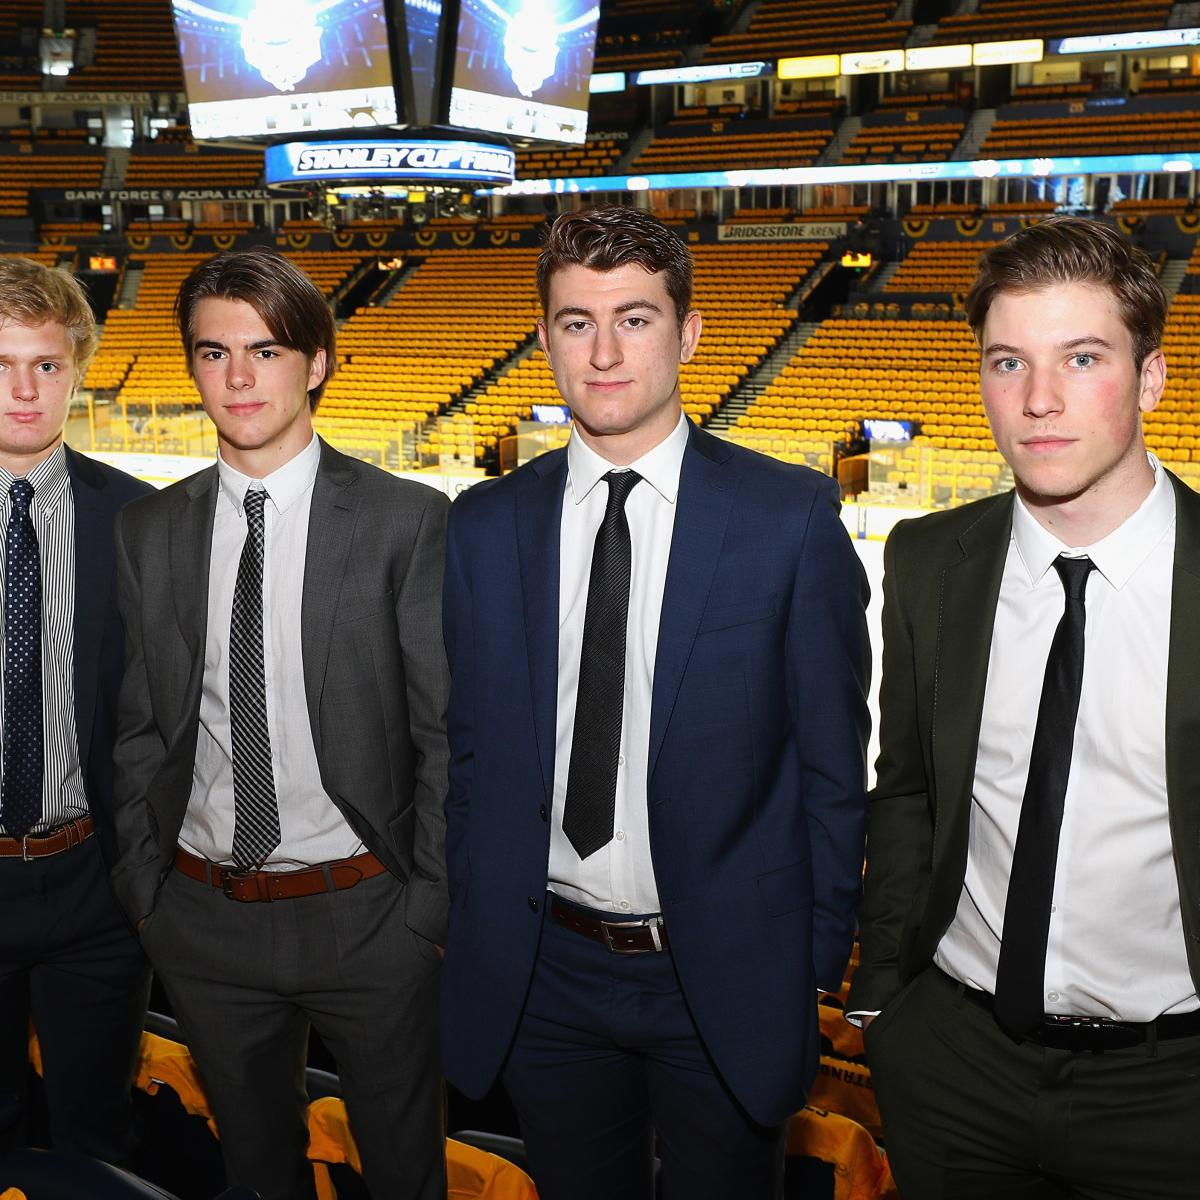 Updated 2016 nhl draft order - Nhl Draft 2017 Updated Order And Mock Draft After Stanley Cup Final Bleacher Report